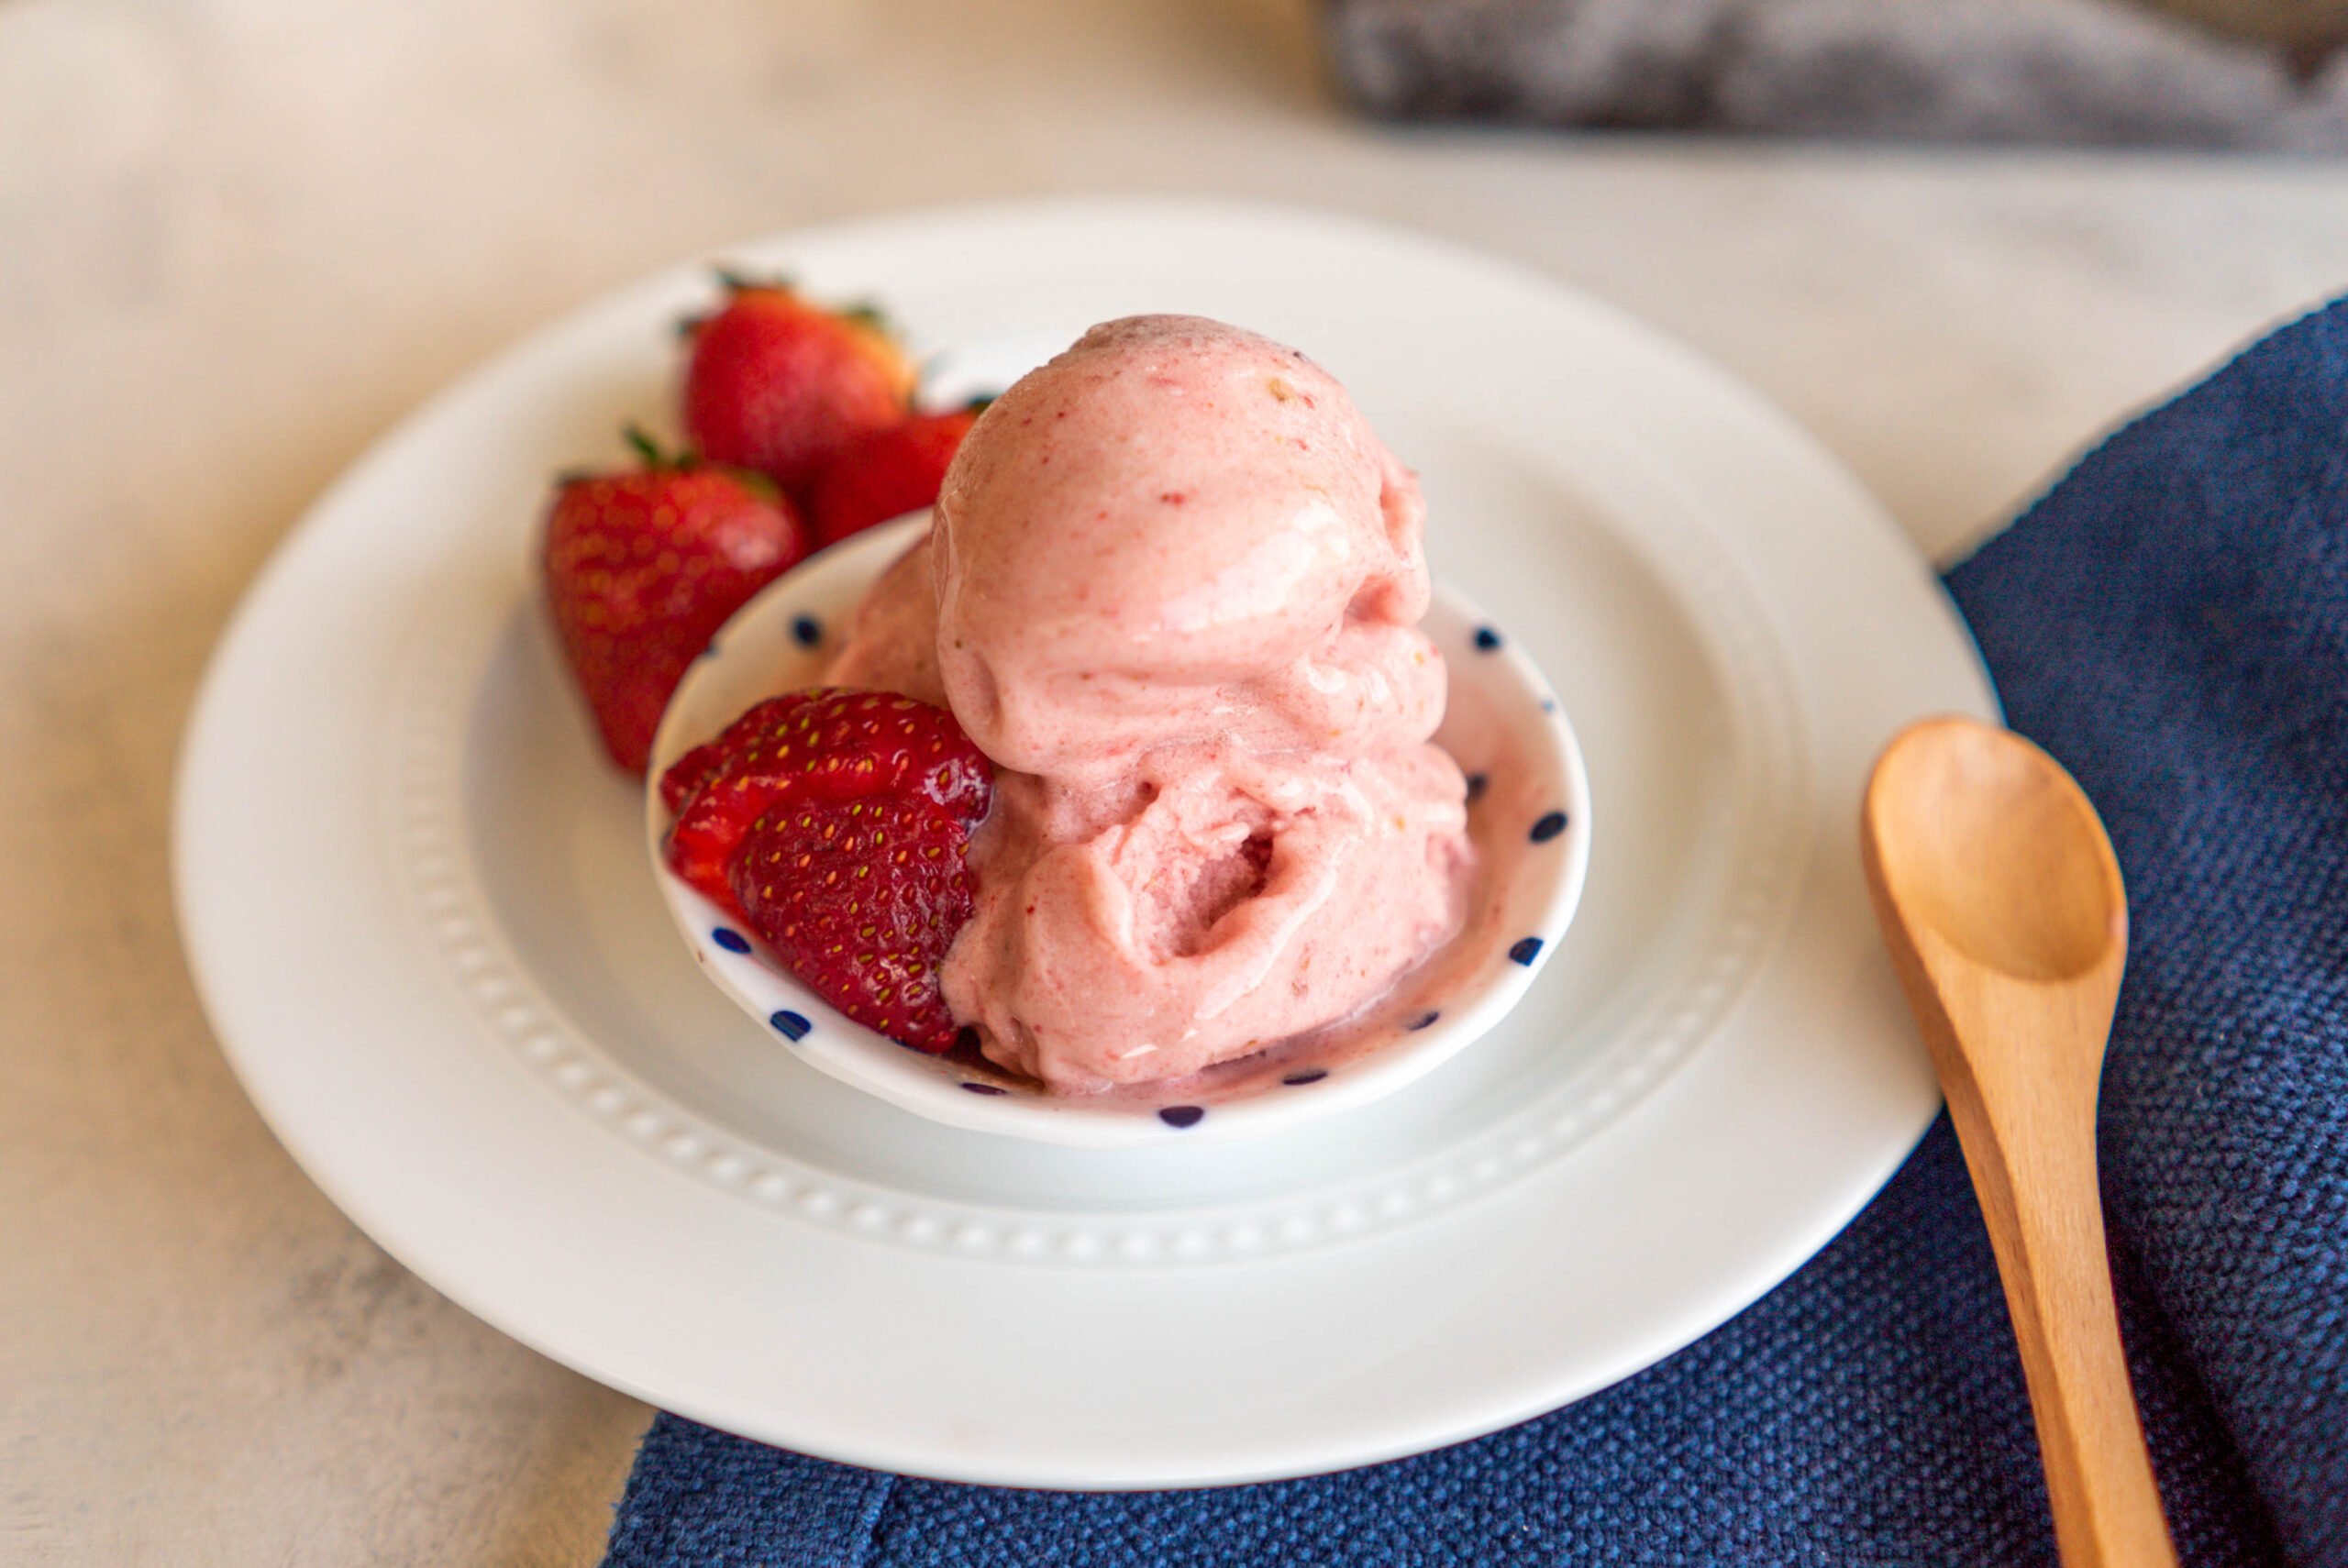 Rosanna Pansino's Dairy-Free Strawberry Ice Cream – Recipe Test & Review